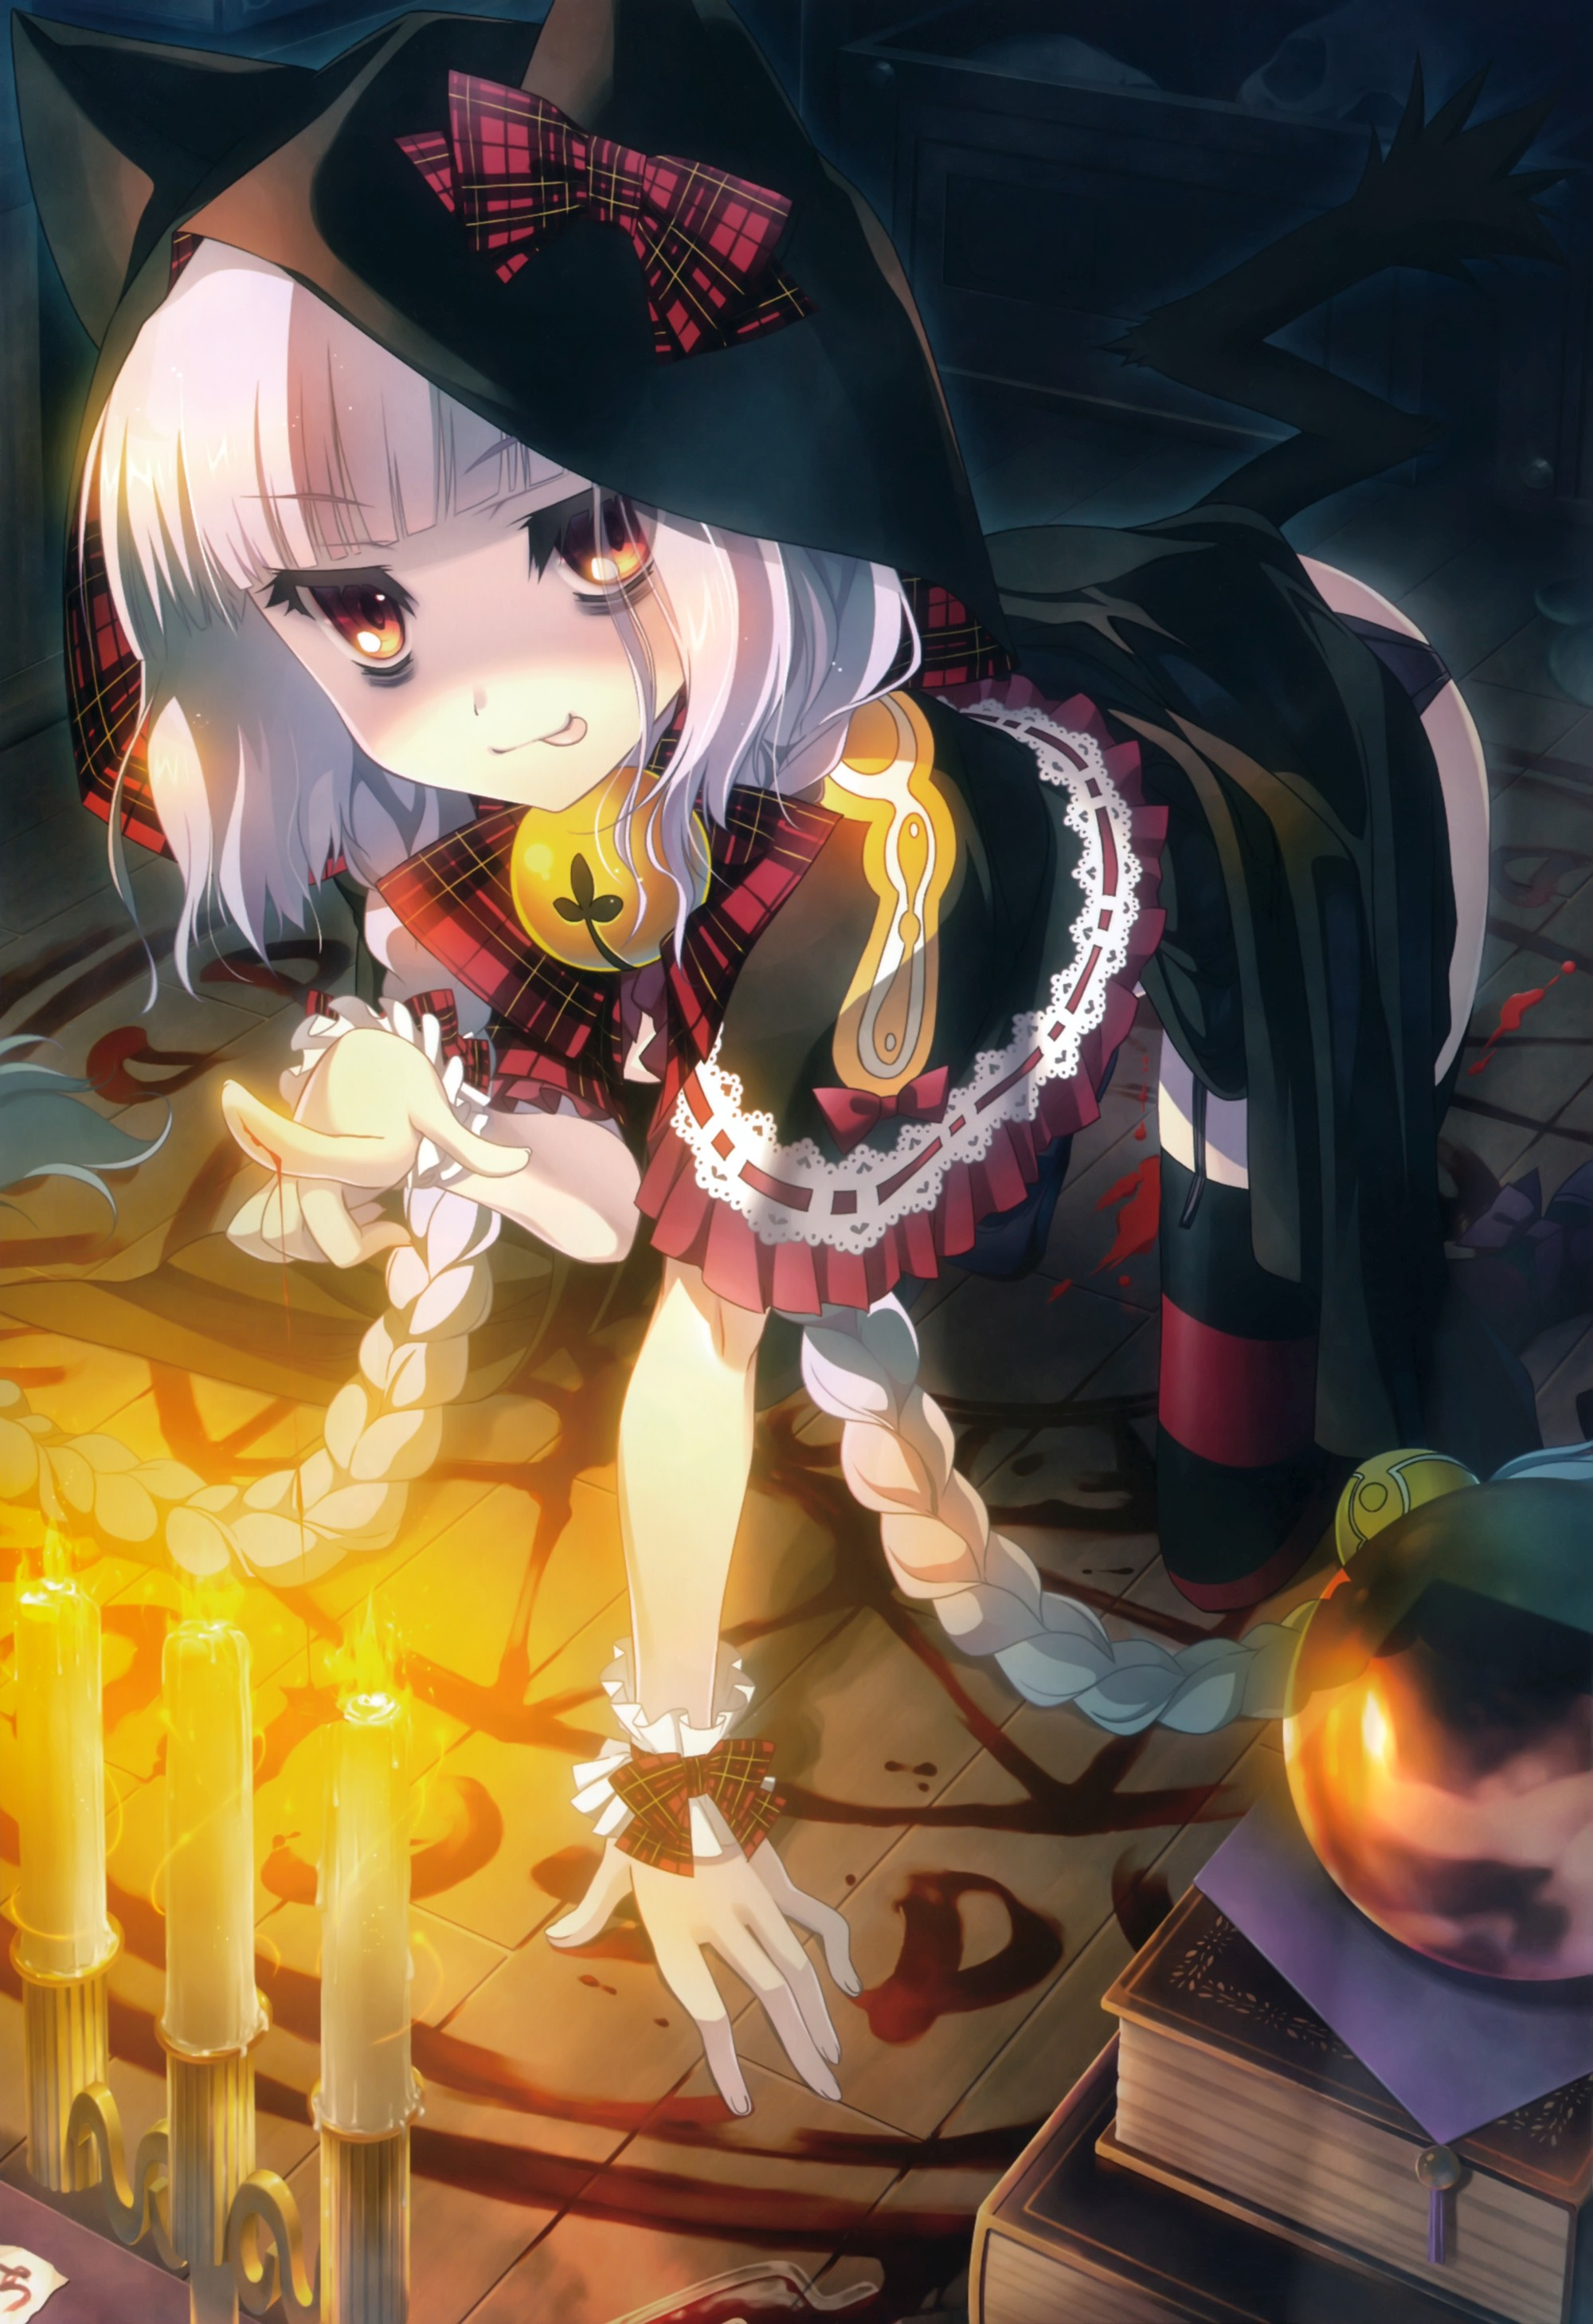 Non-Erotic Halloween Themed Moe Artwork